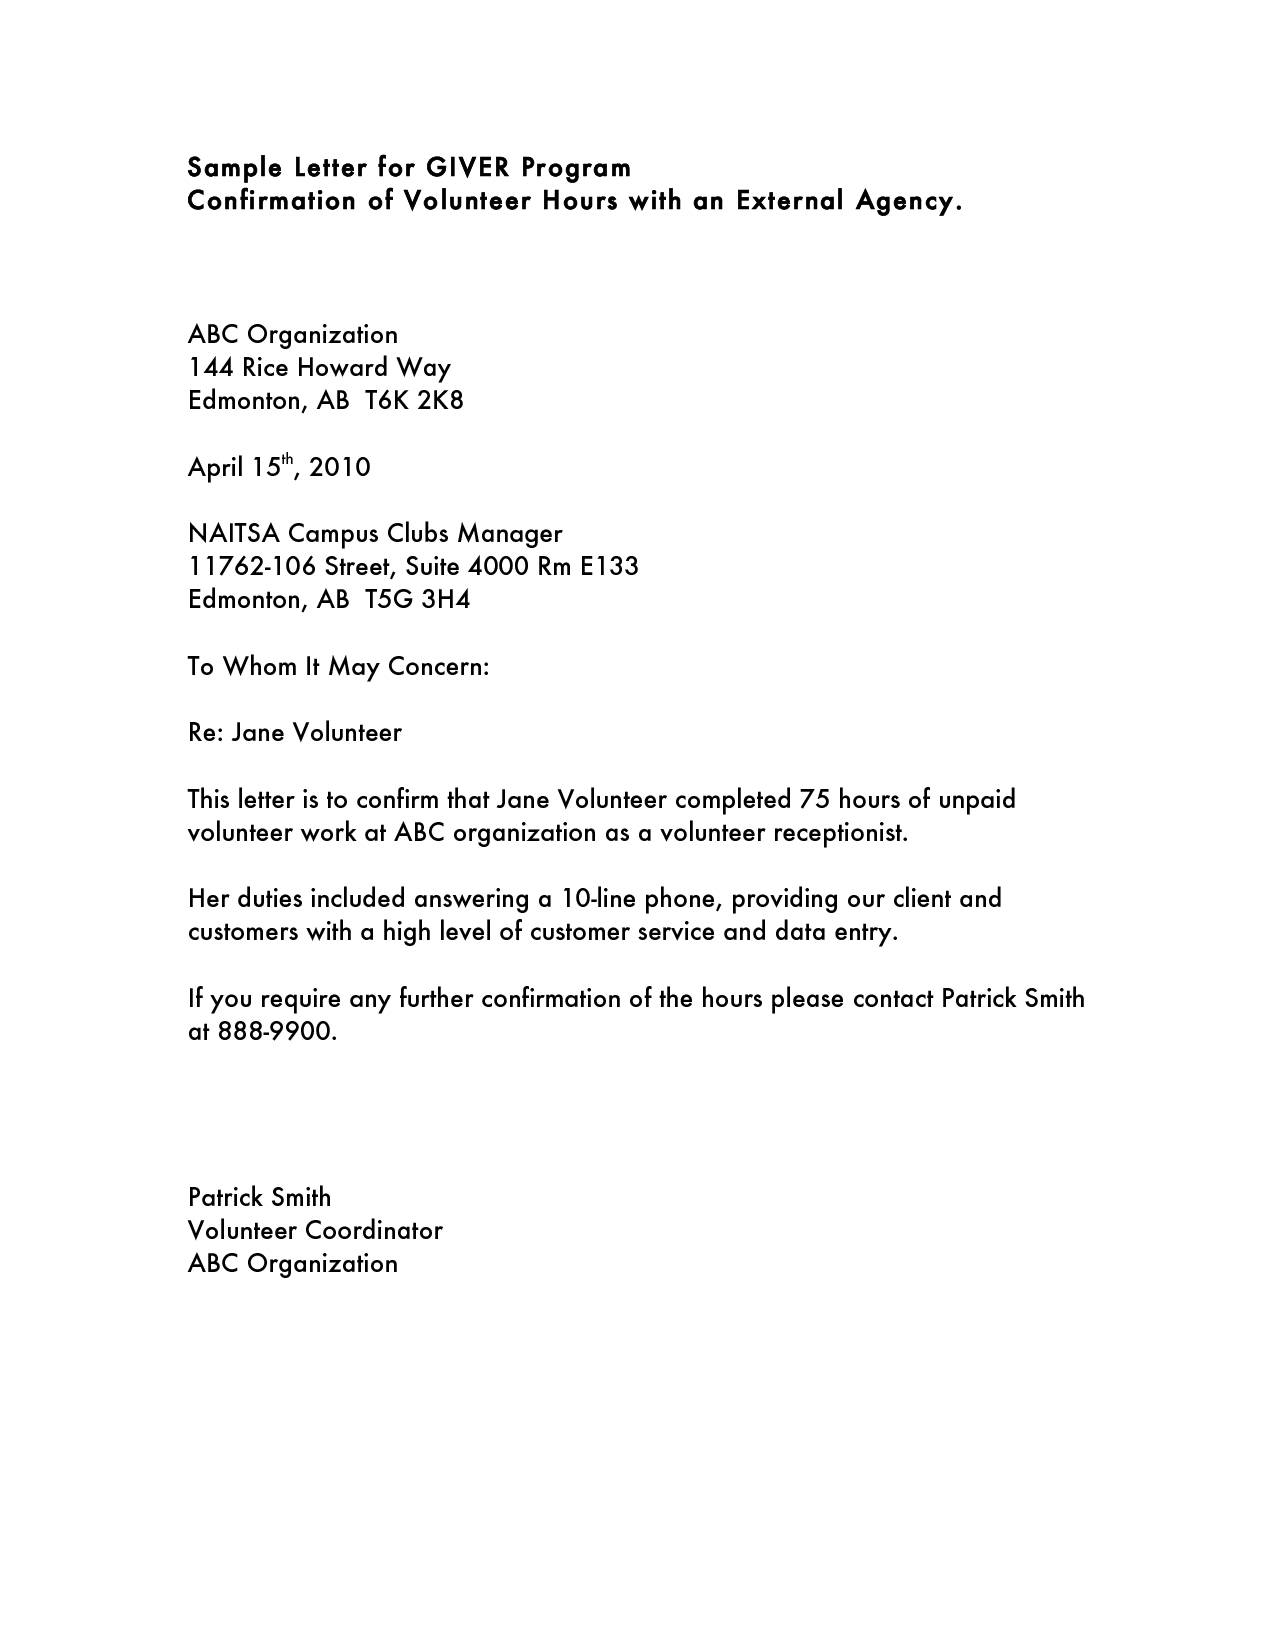 Court ordered Community Service Letter Template - Sample Munity Service Hours Letter Sample Munity Service